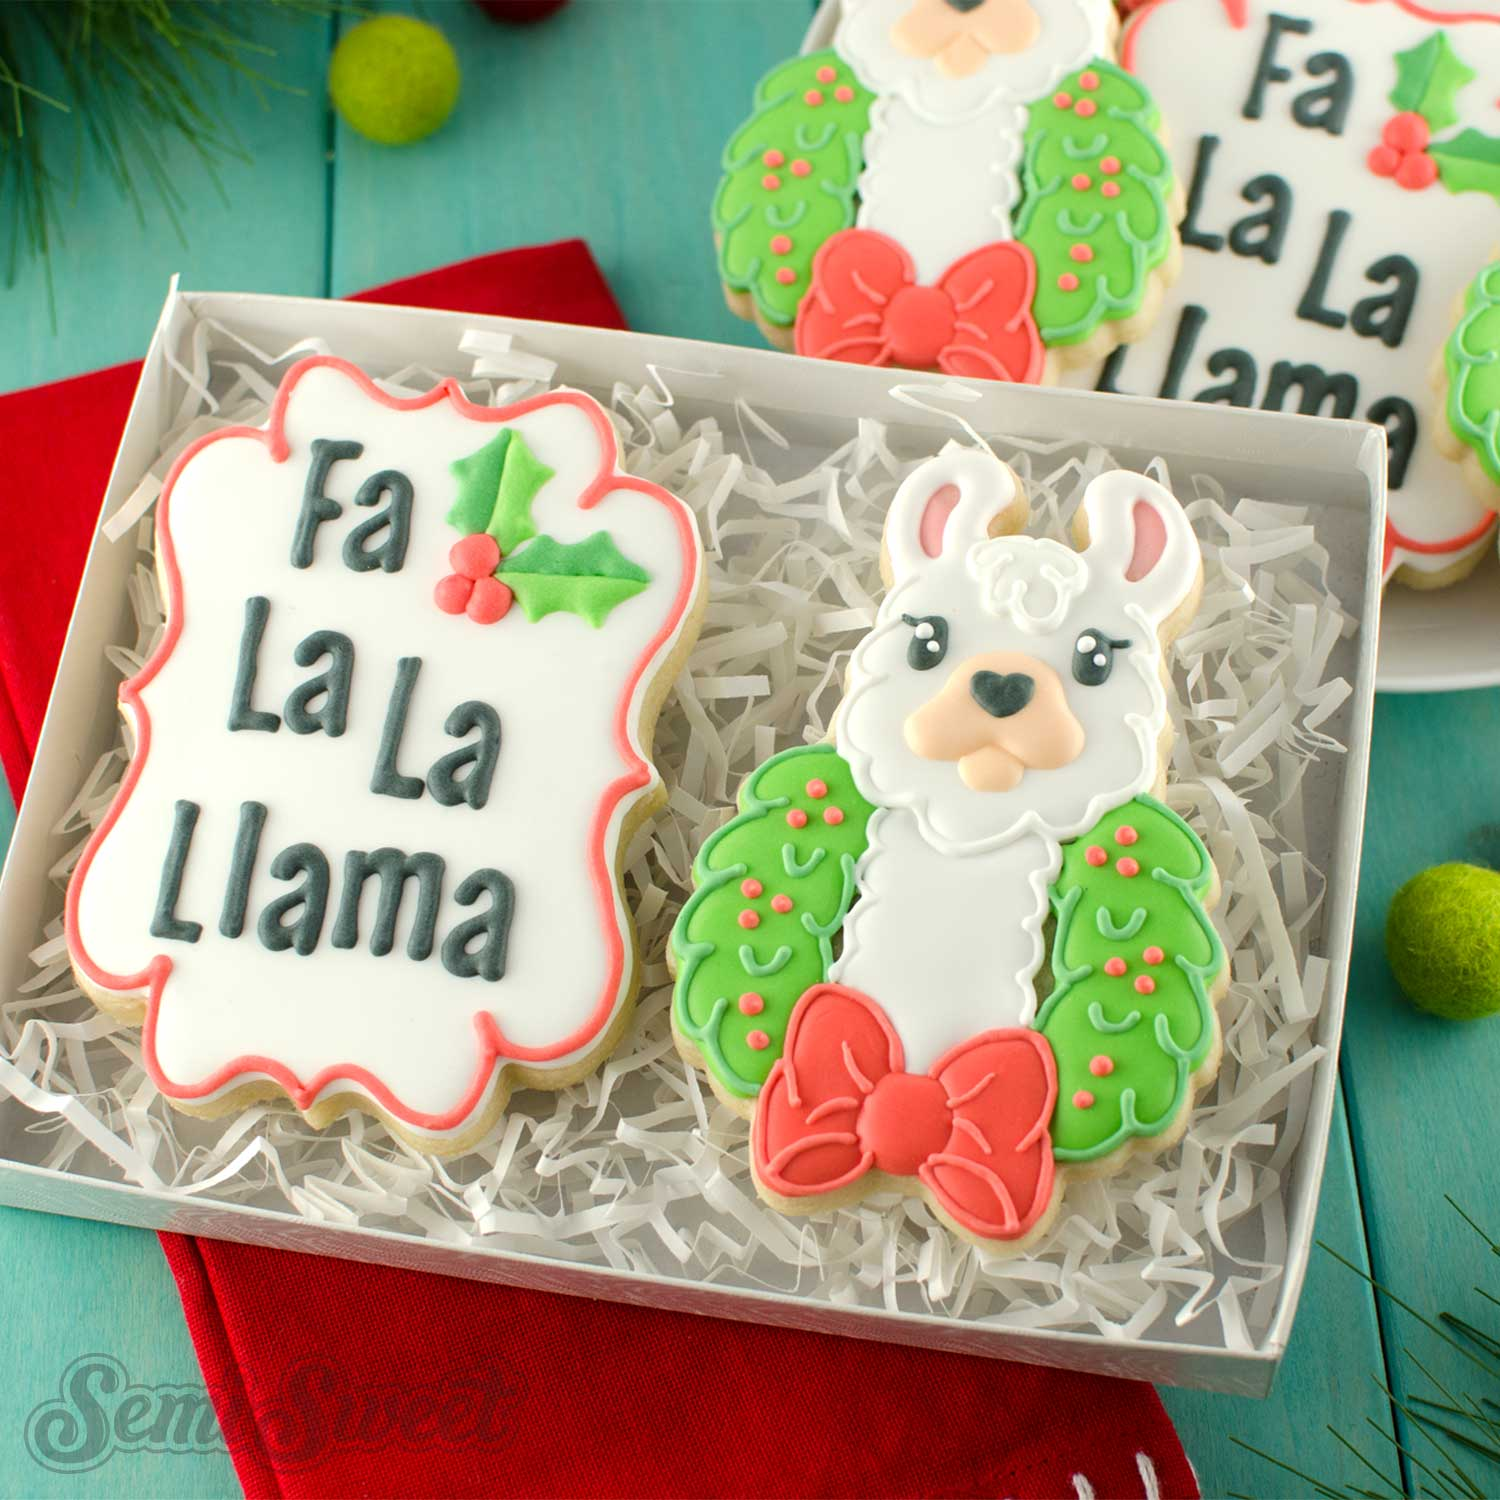 How to Make Christmas Llama Cookies